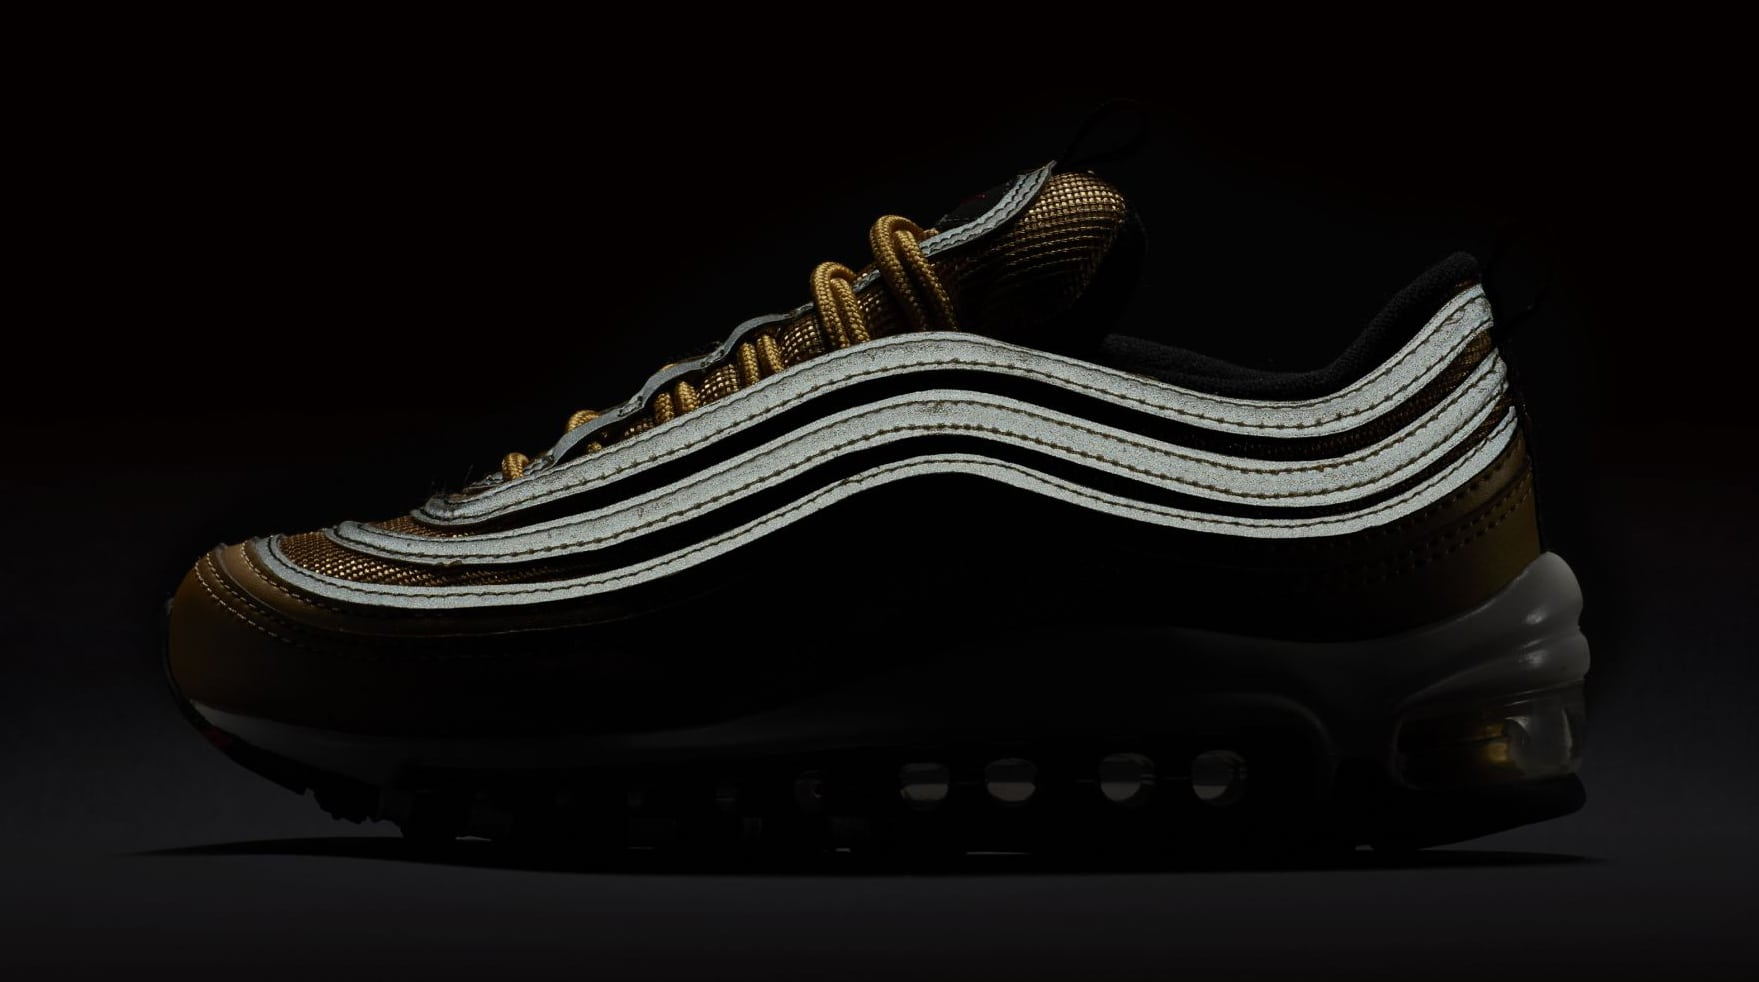 black and gold 97's